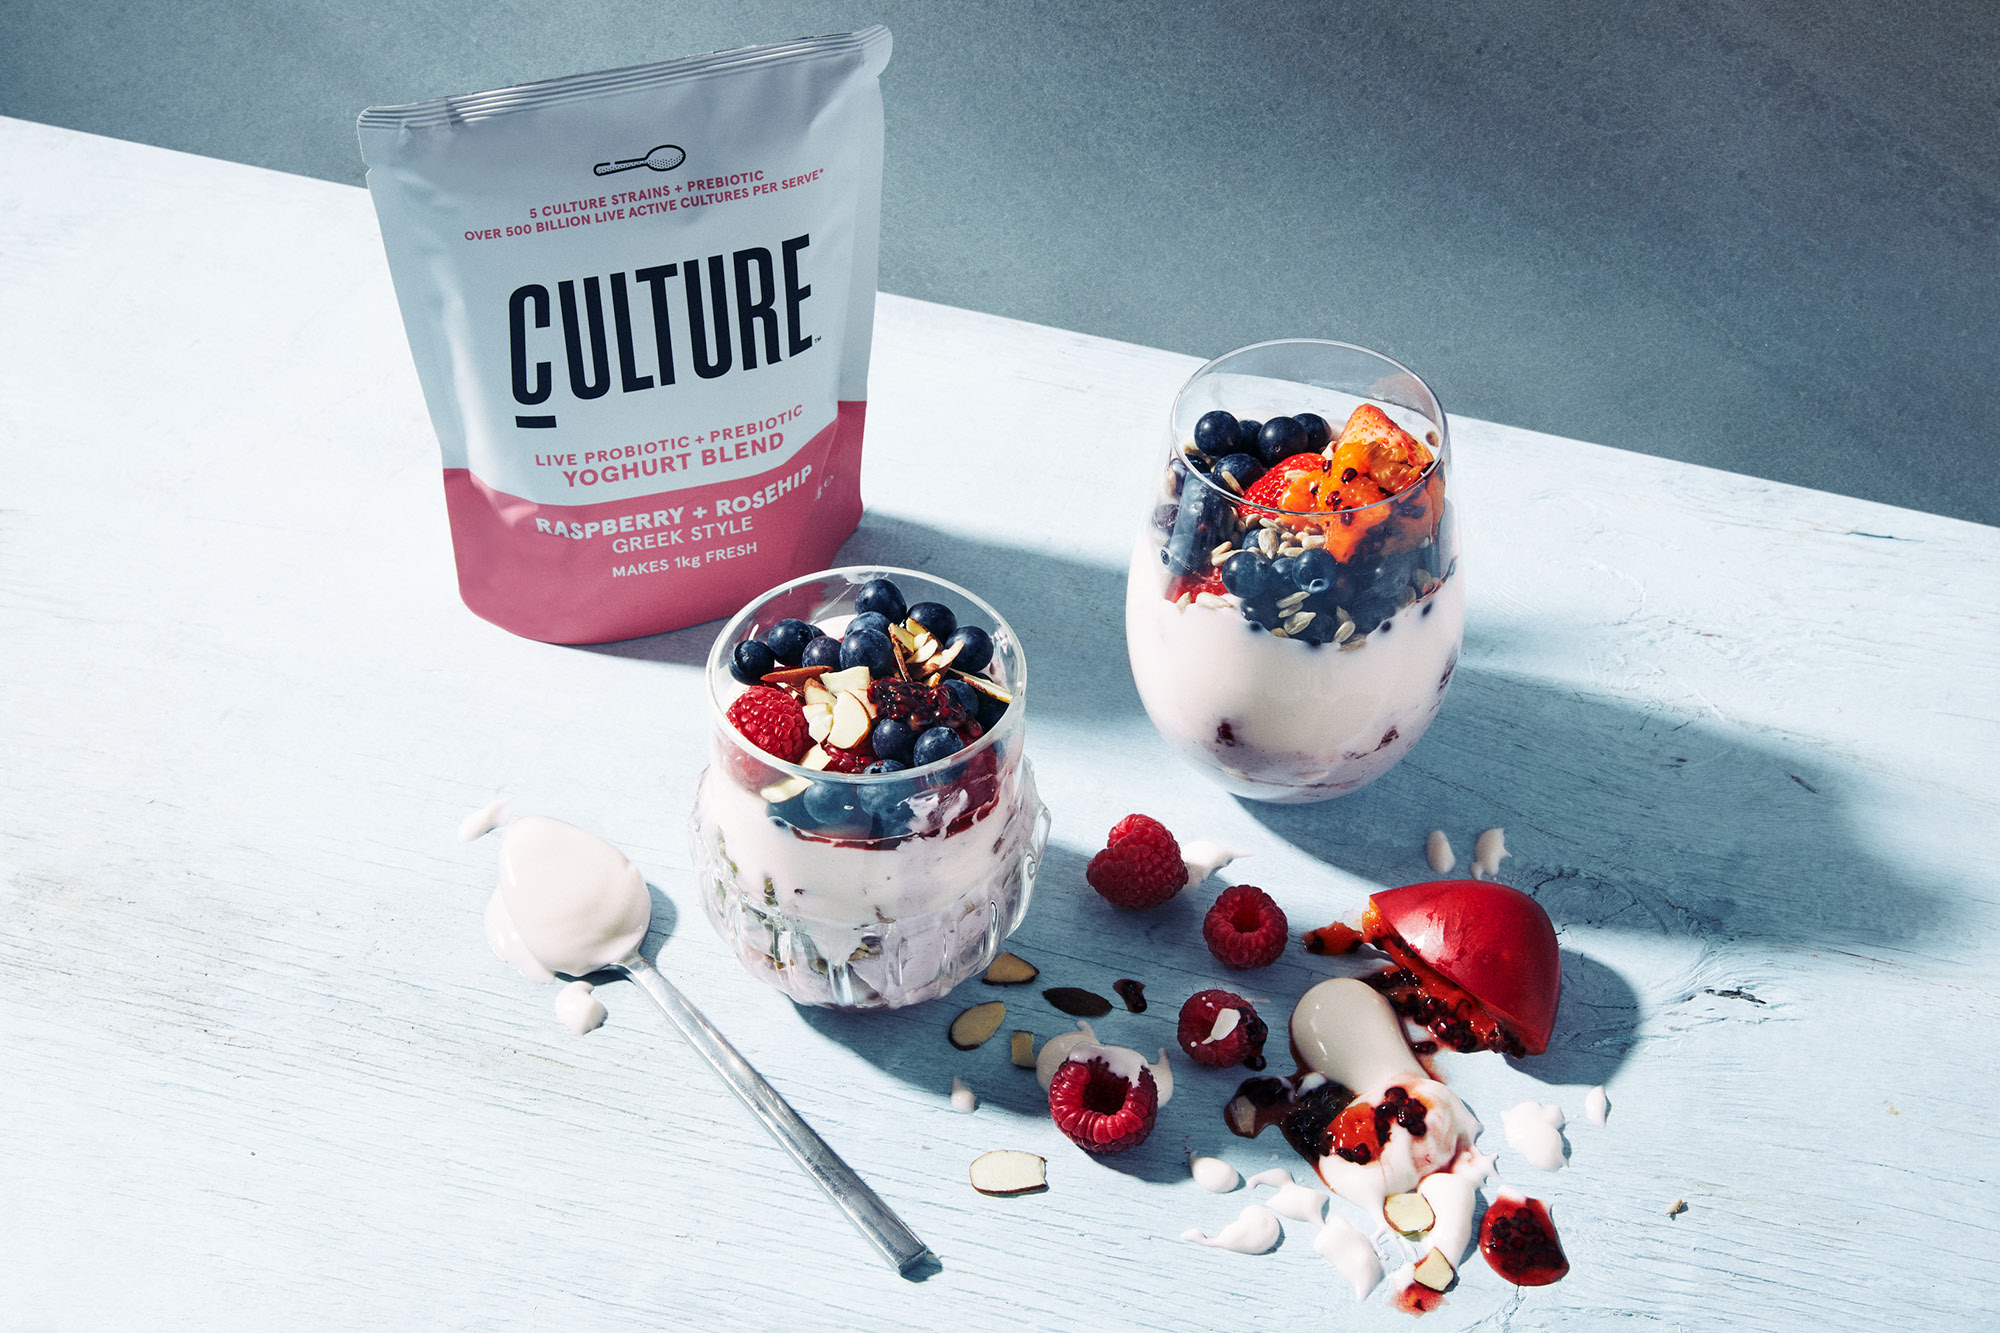 onfire design culture yoghurt packaging design 10